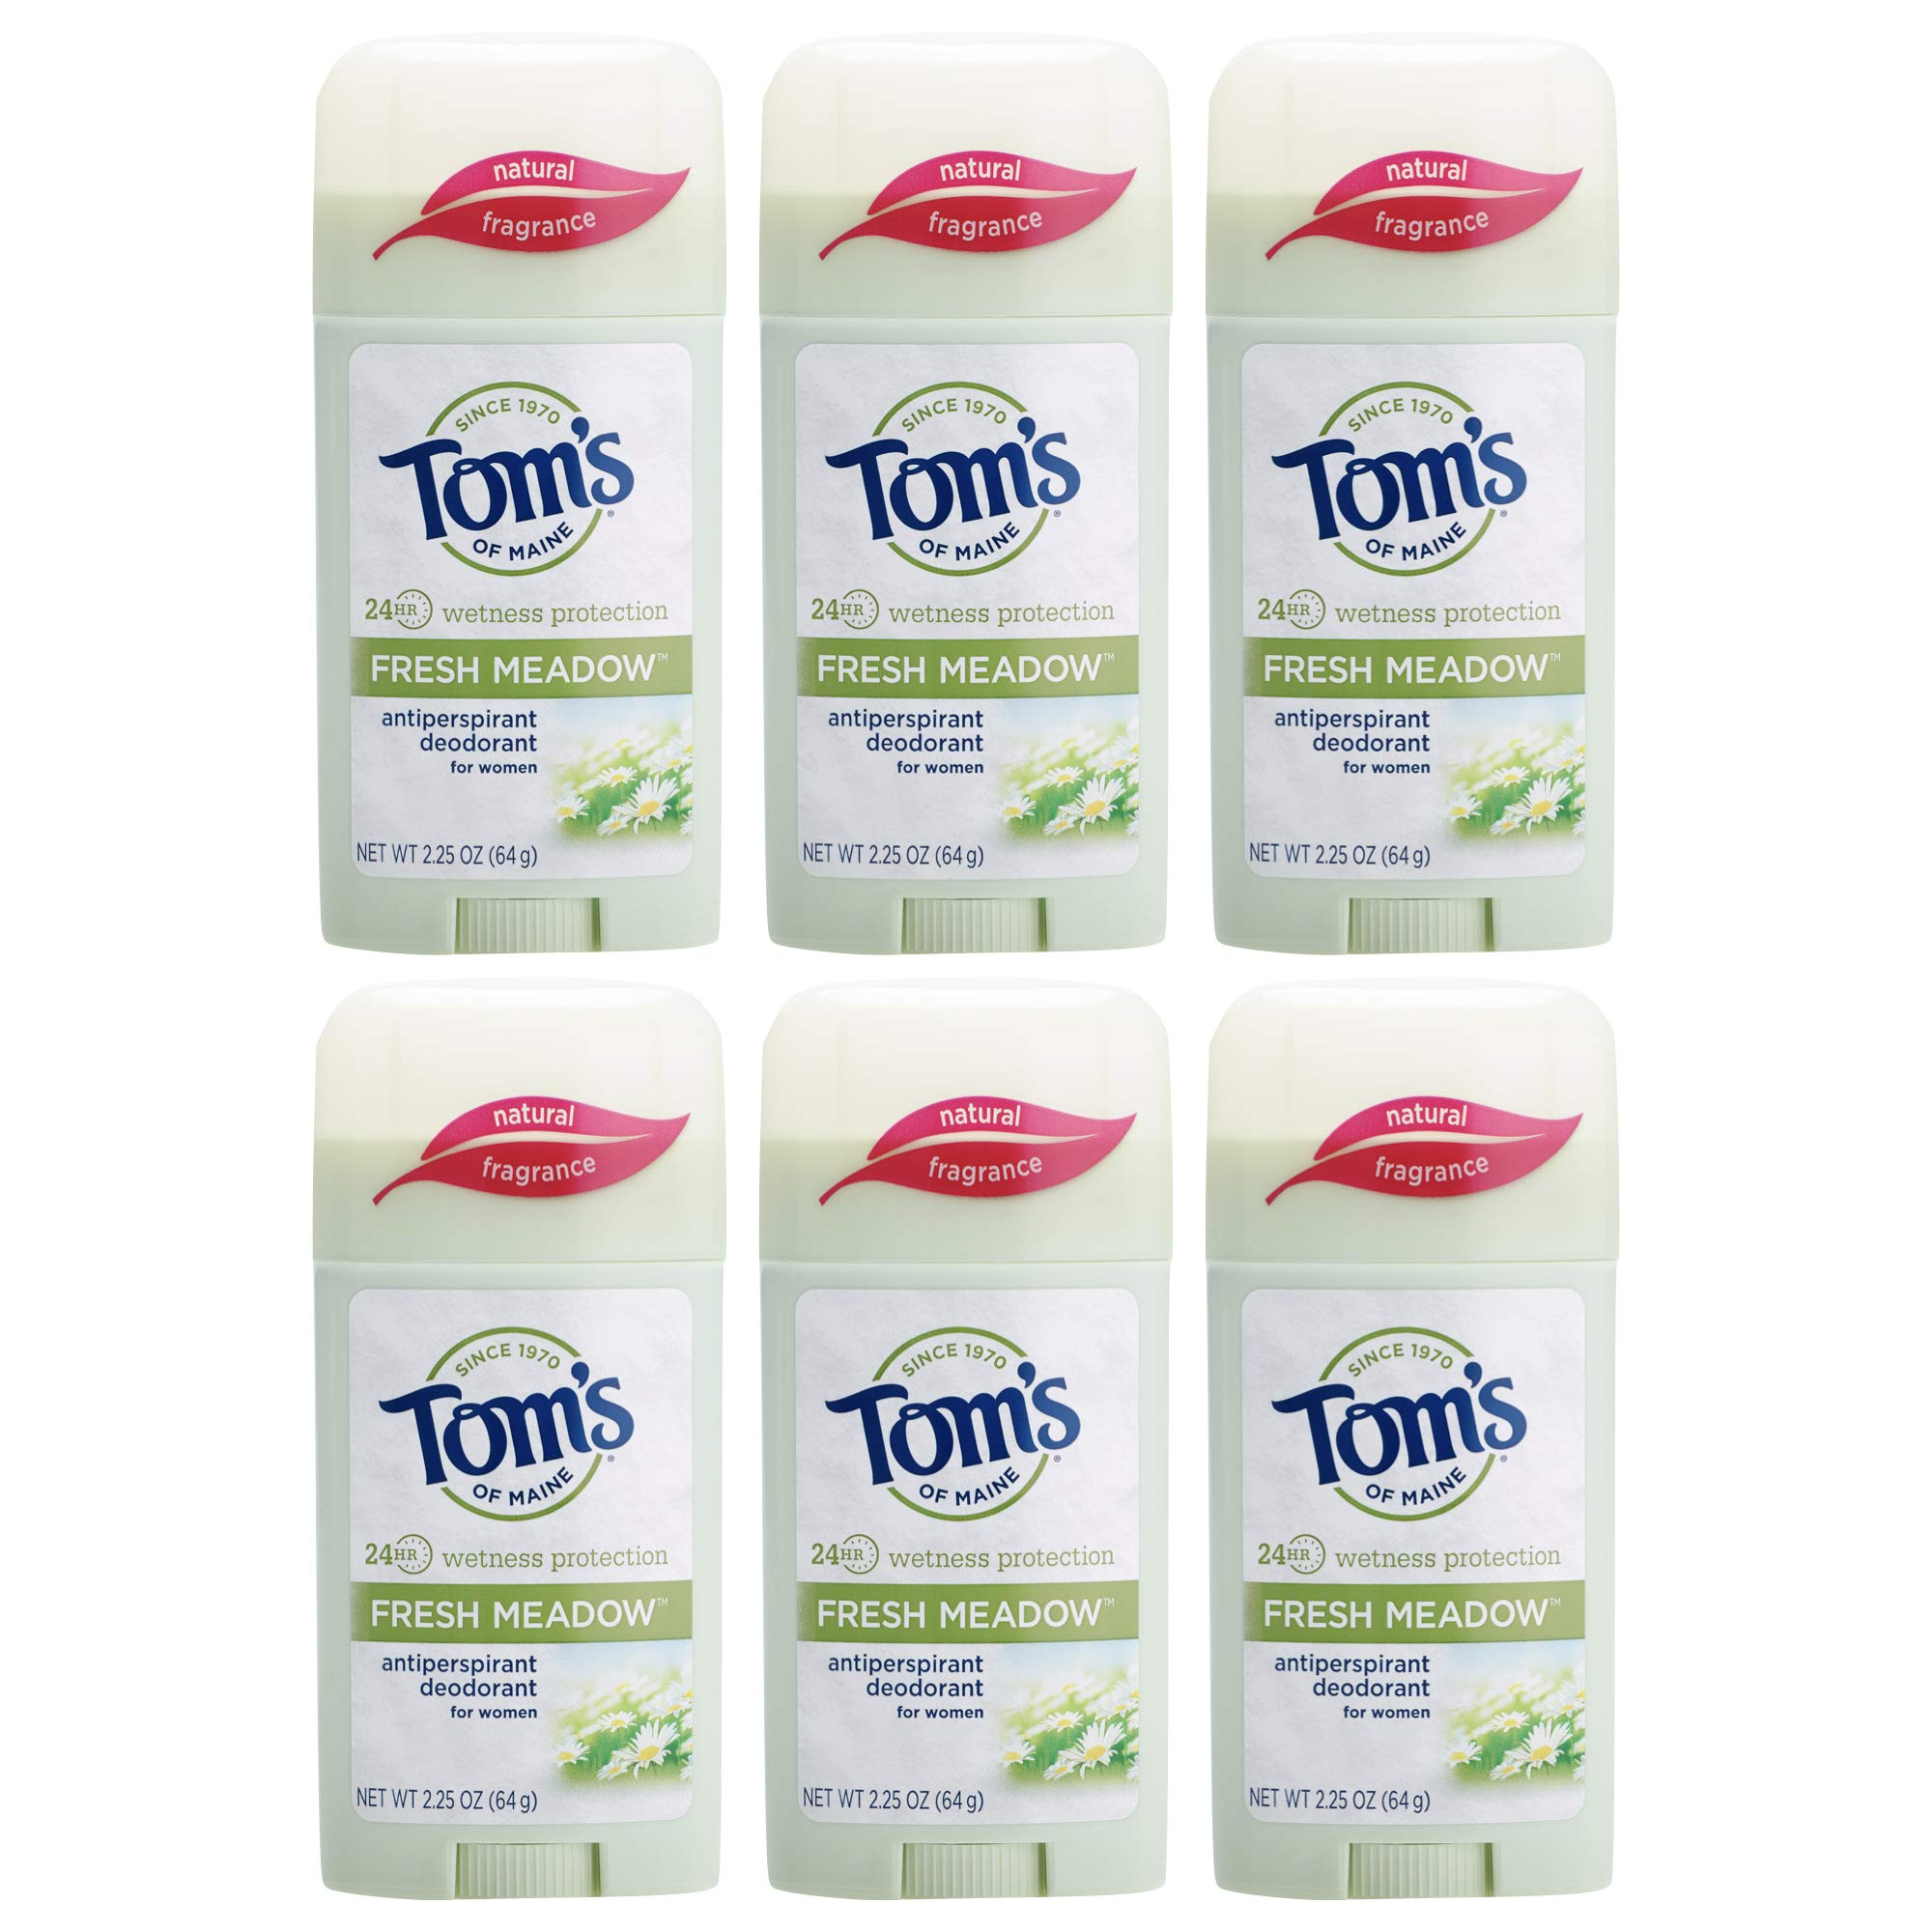 Tom's of Maine Natural Fresh Meadow Women's Stick Antiperspirant, 2.25 Ounce, ( Pack of 6 ) by Tom's of Maine